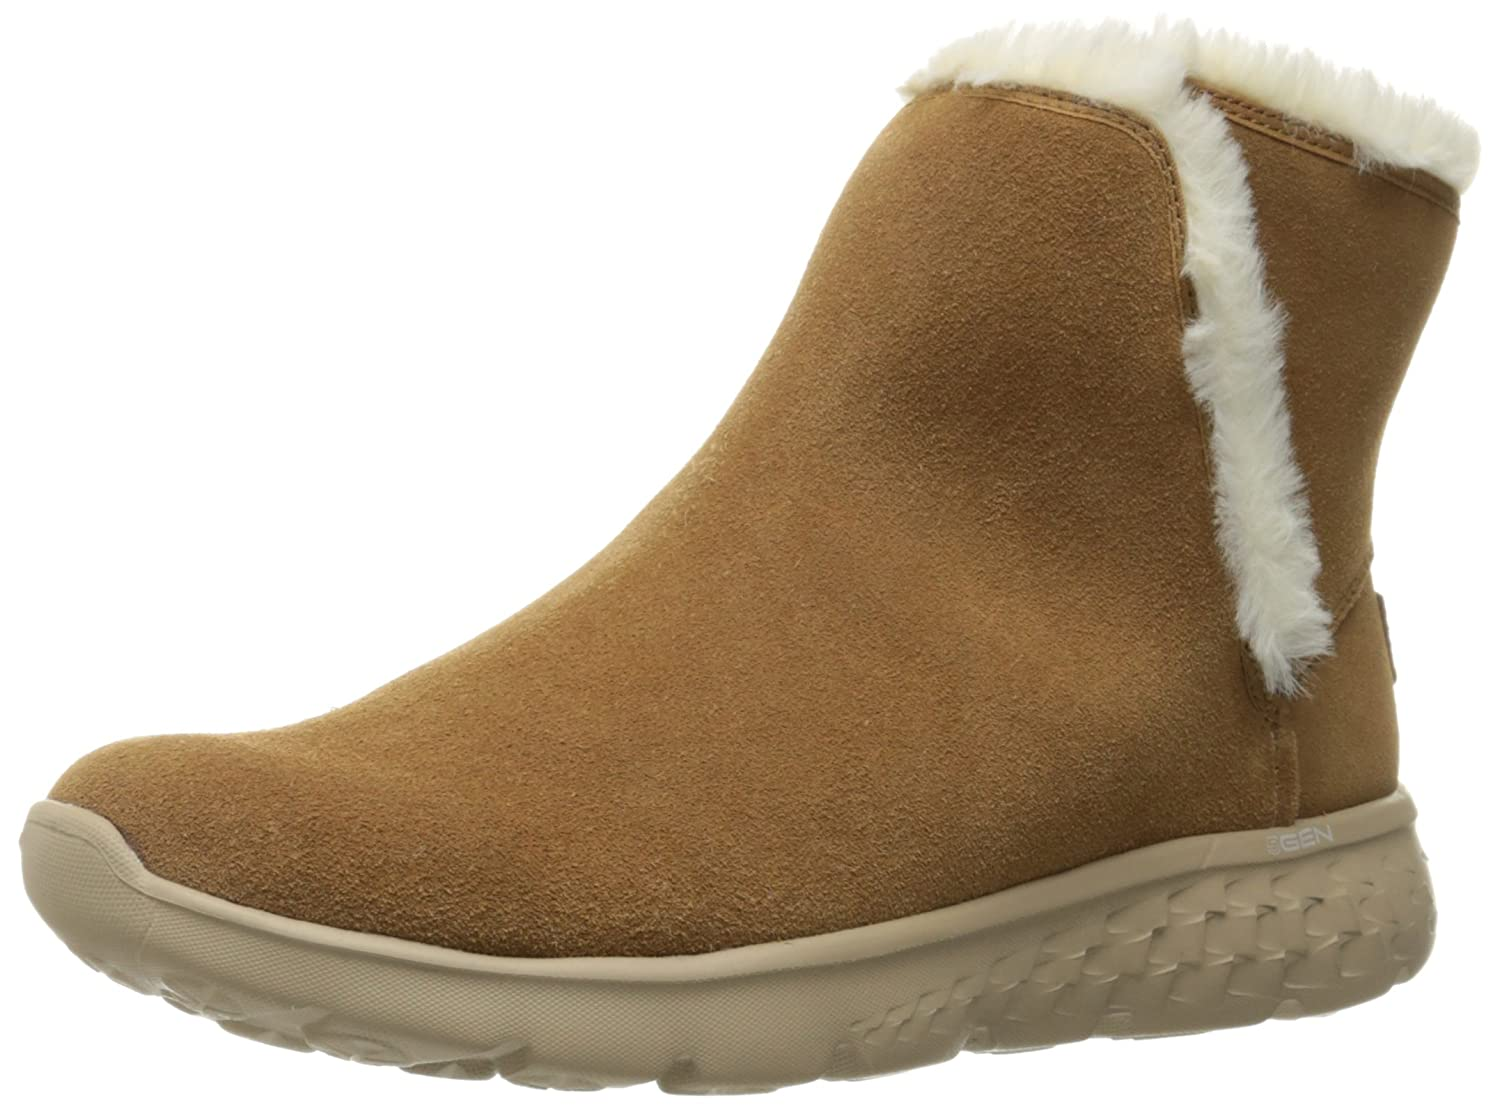 Skechers Performance Women's On The Go 400 Blaze Winter Boot B01B4MQHZO 6 B(M) US|Chestnut